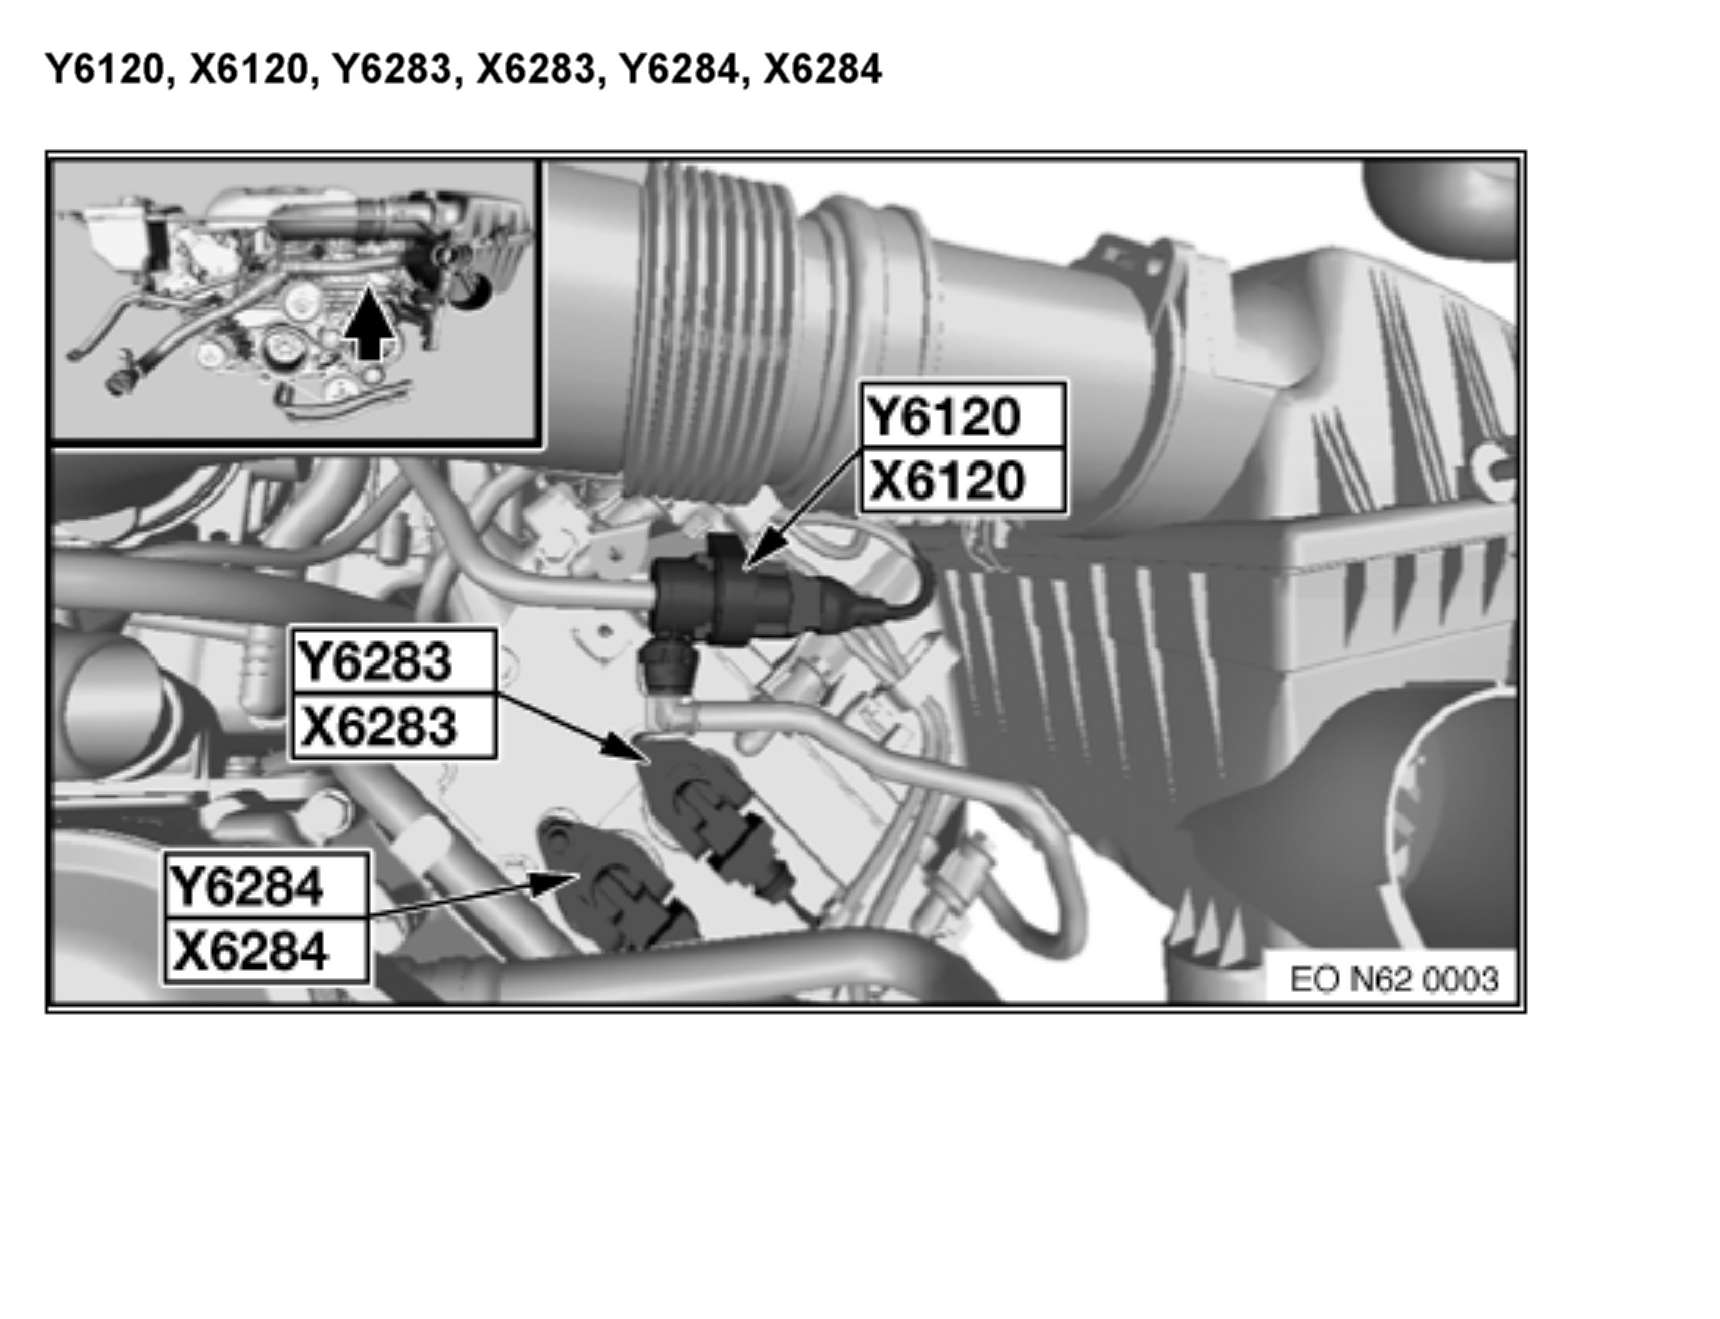 Bmw Z4 Spare Tire Location likewise 2011 Bmw 328i Engine Diagram together with 214112 Bmw Tank Ventilation Valve besides Vapor Canister Vent Valve Location besides 2011 Bmw 328i Engine Diagram. on bmw and mini fuel vapor recovery systems charcoal canisters